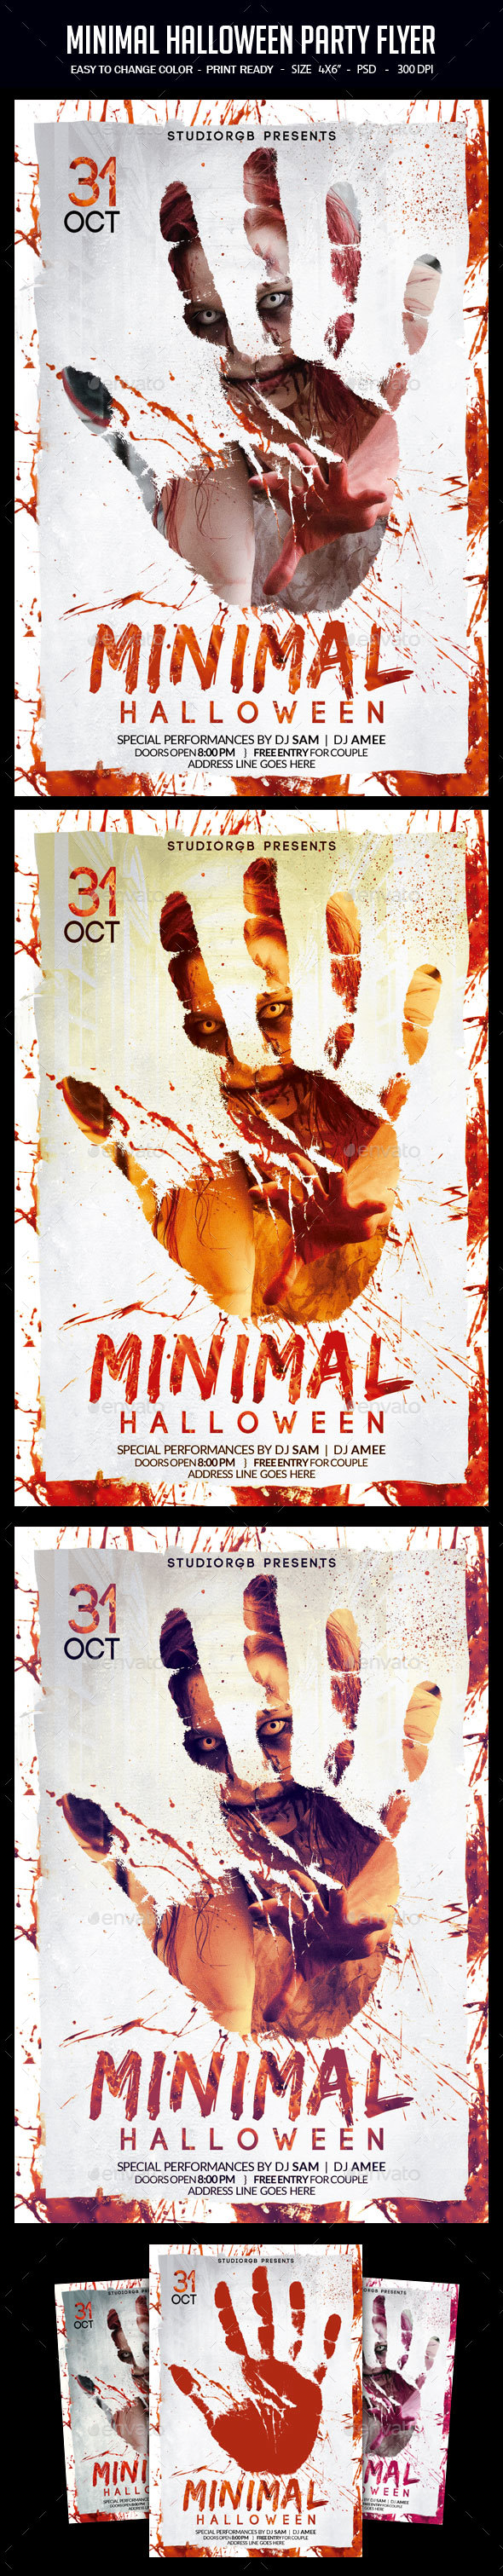 Minimal Halloween Party Flyer - Clubs & Parties Events